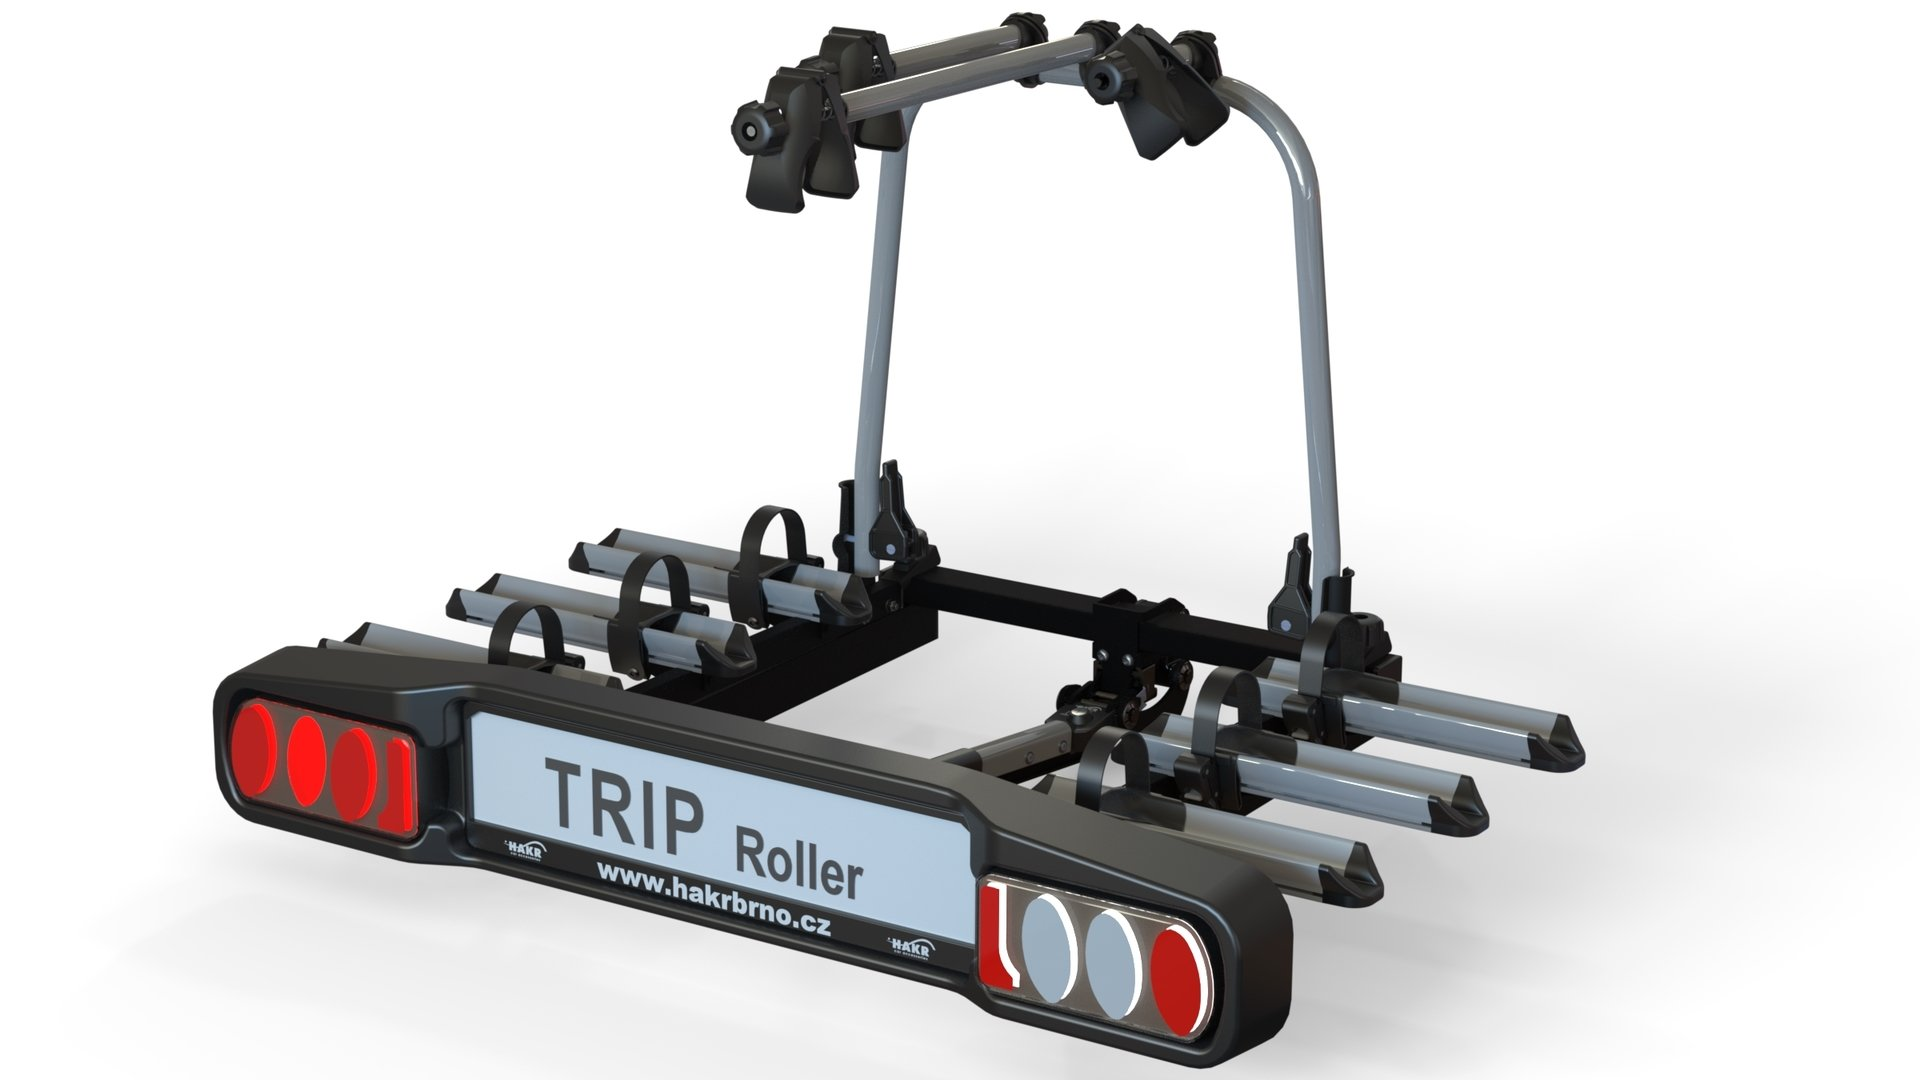 TRIP MIDDLE for 3 scooter